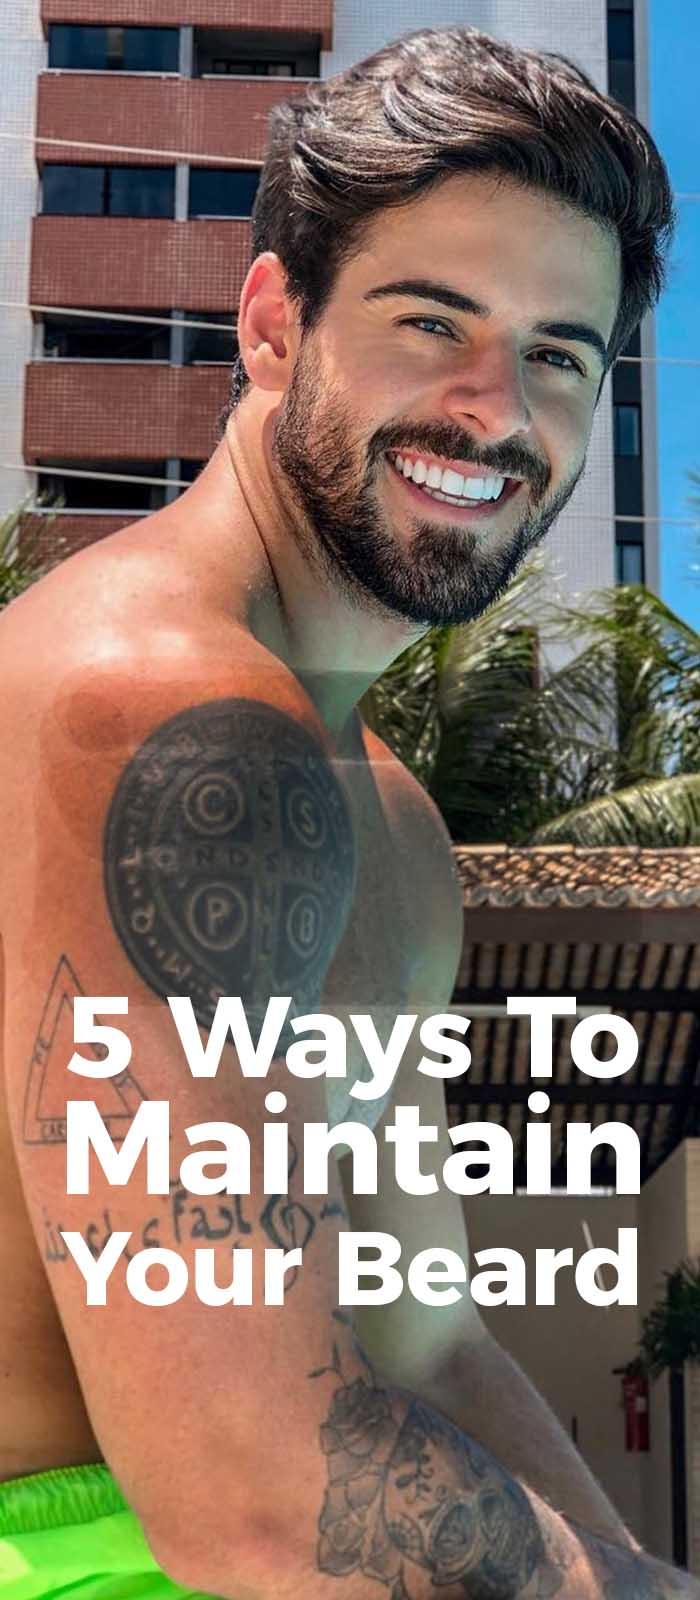 Ways To Maintain Your Beard